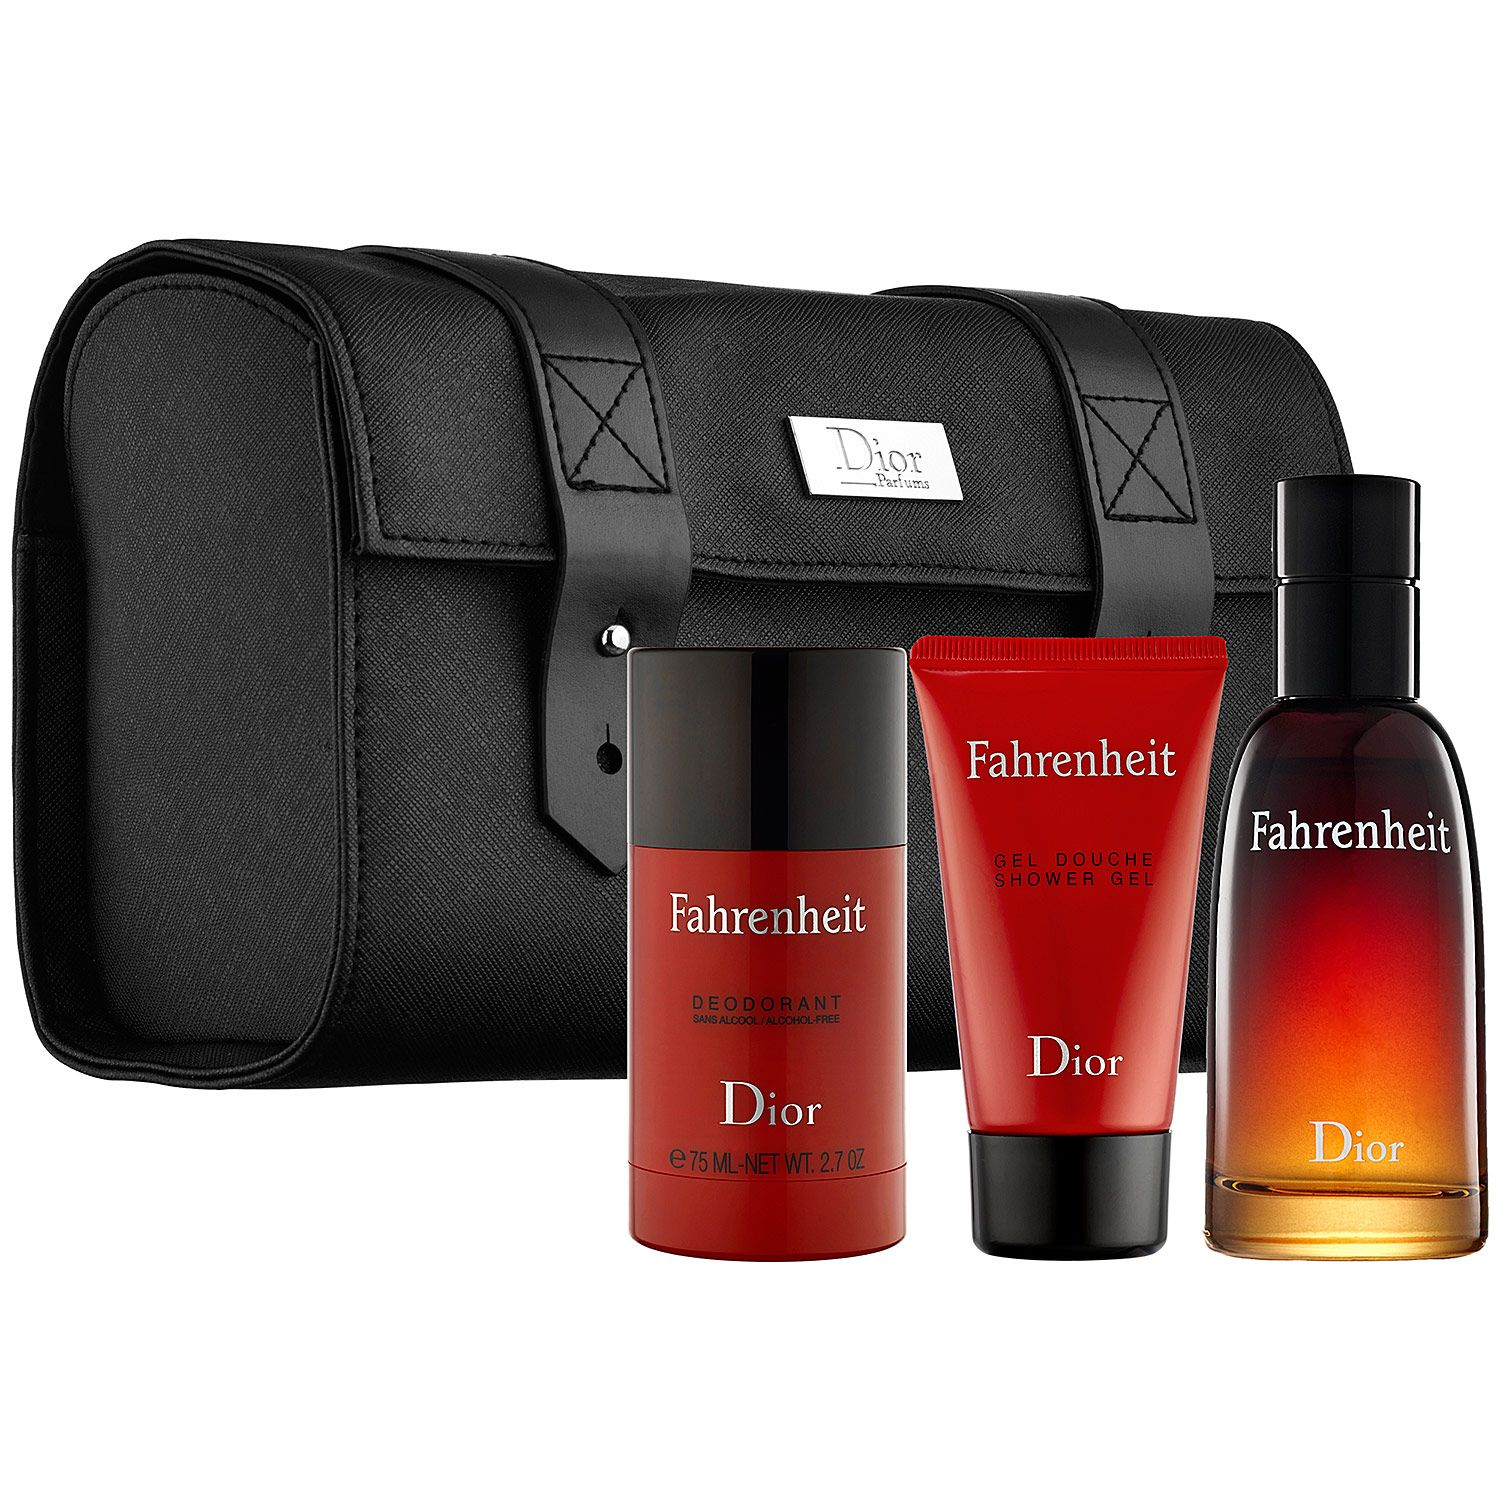 Dior Fahrenheit Gift Set  Sephora  gifts  giftsforhim   Gifts for ... 2b63e9c77c